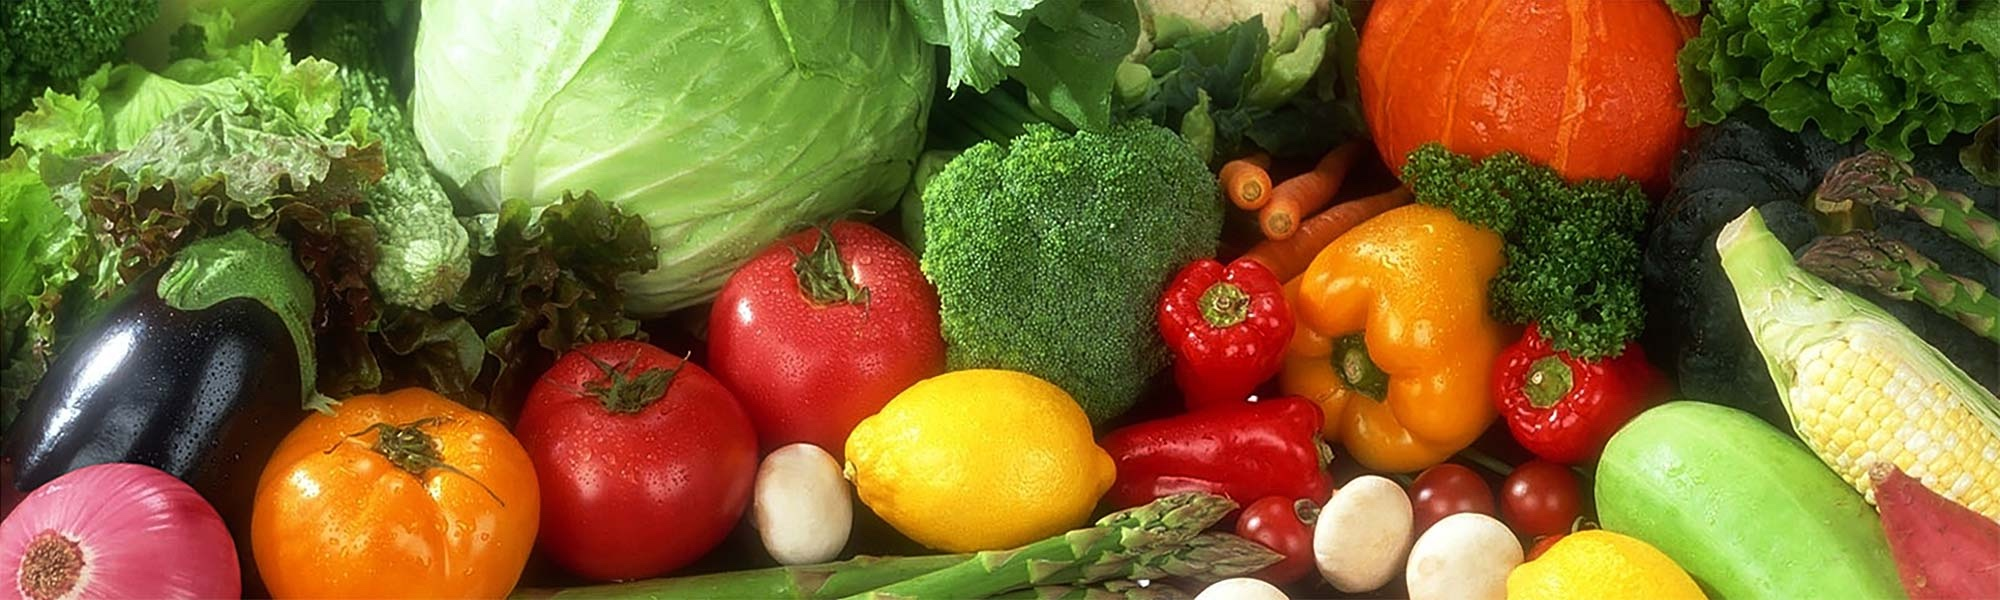 Assortment of fresh organic vegetables on a tabletop